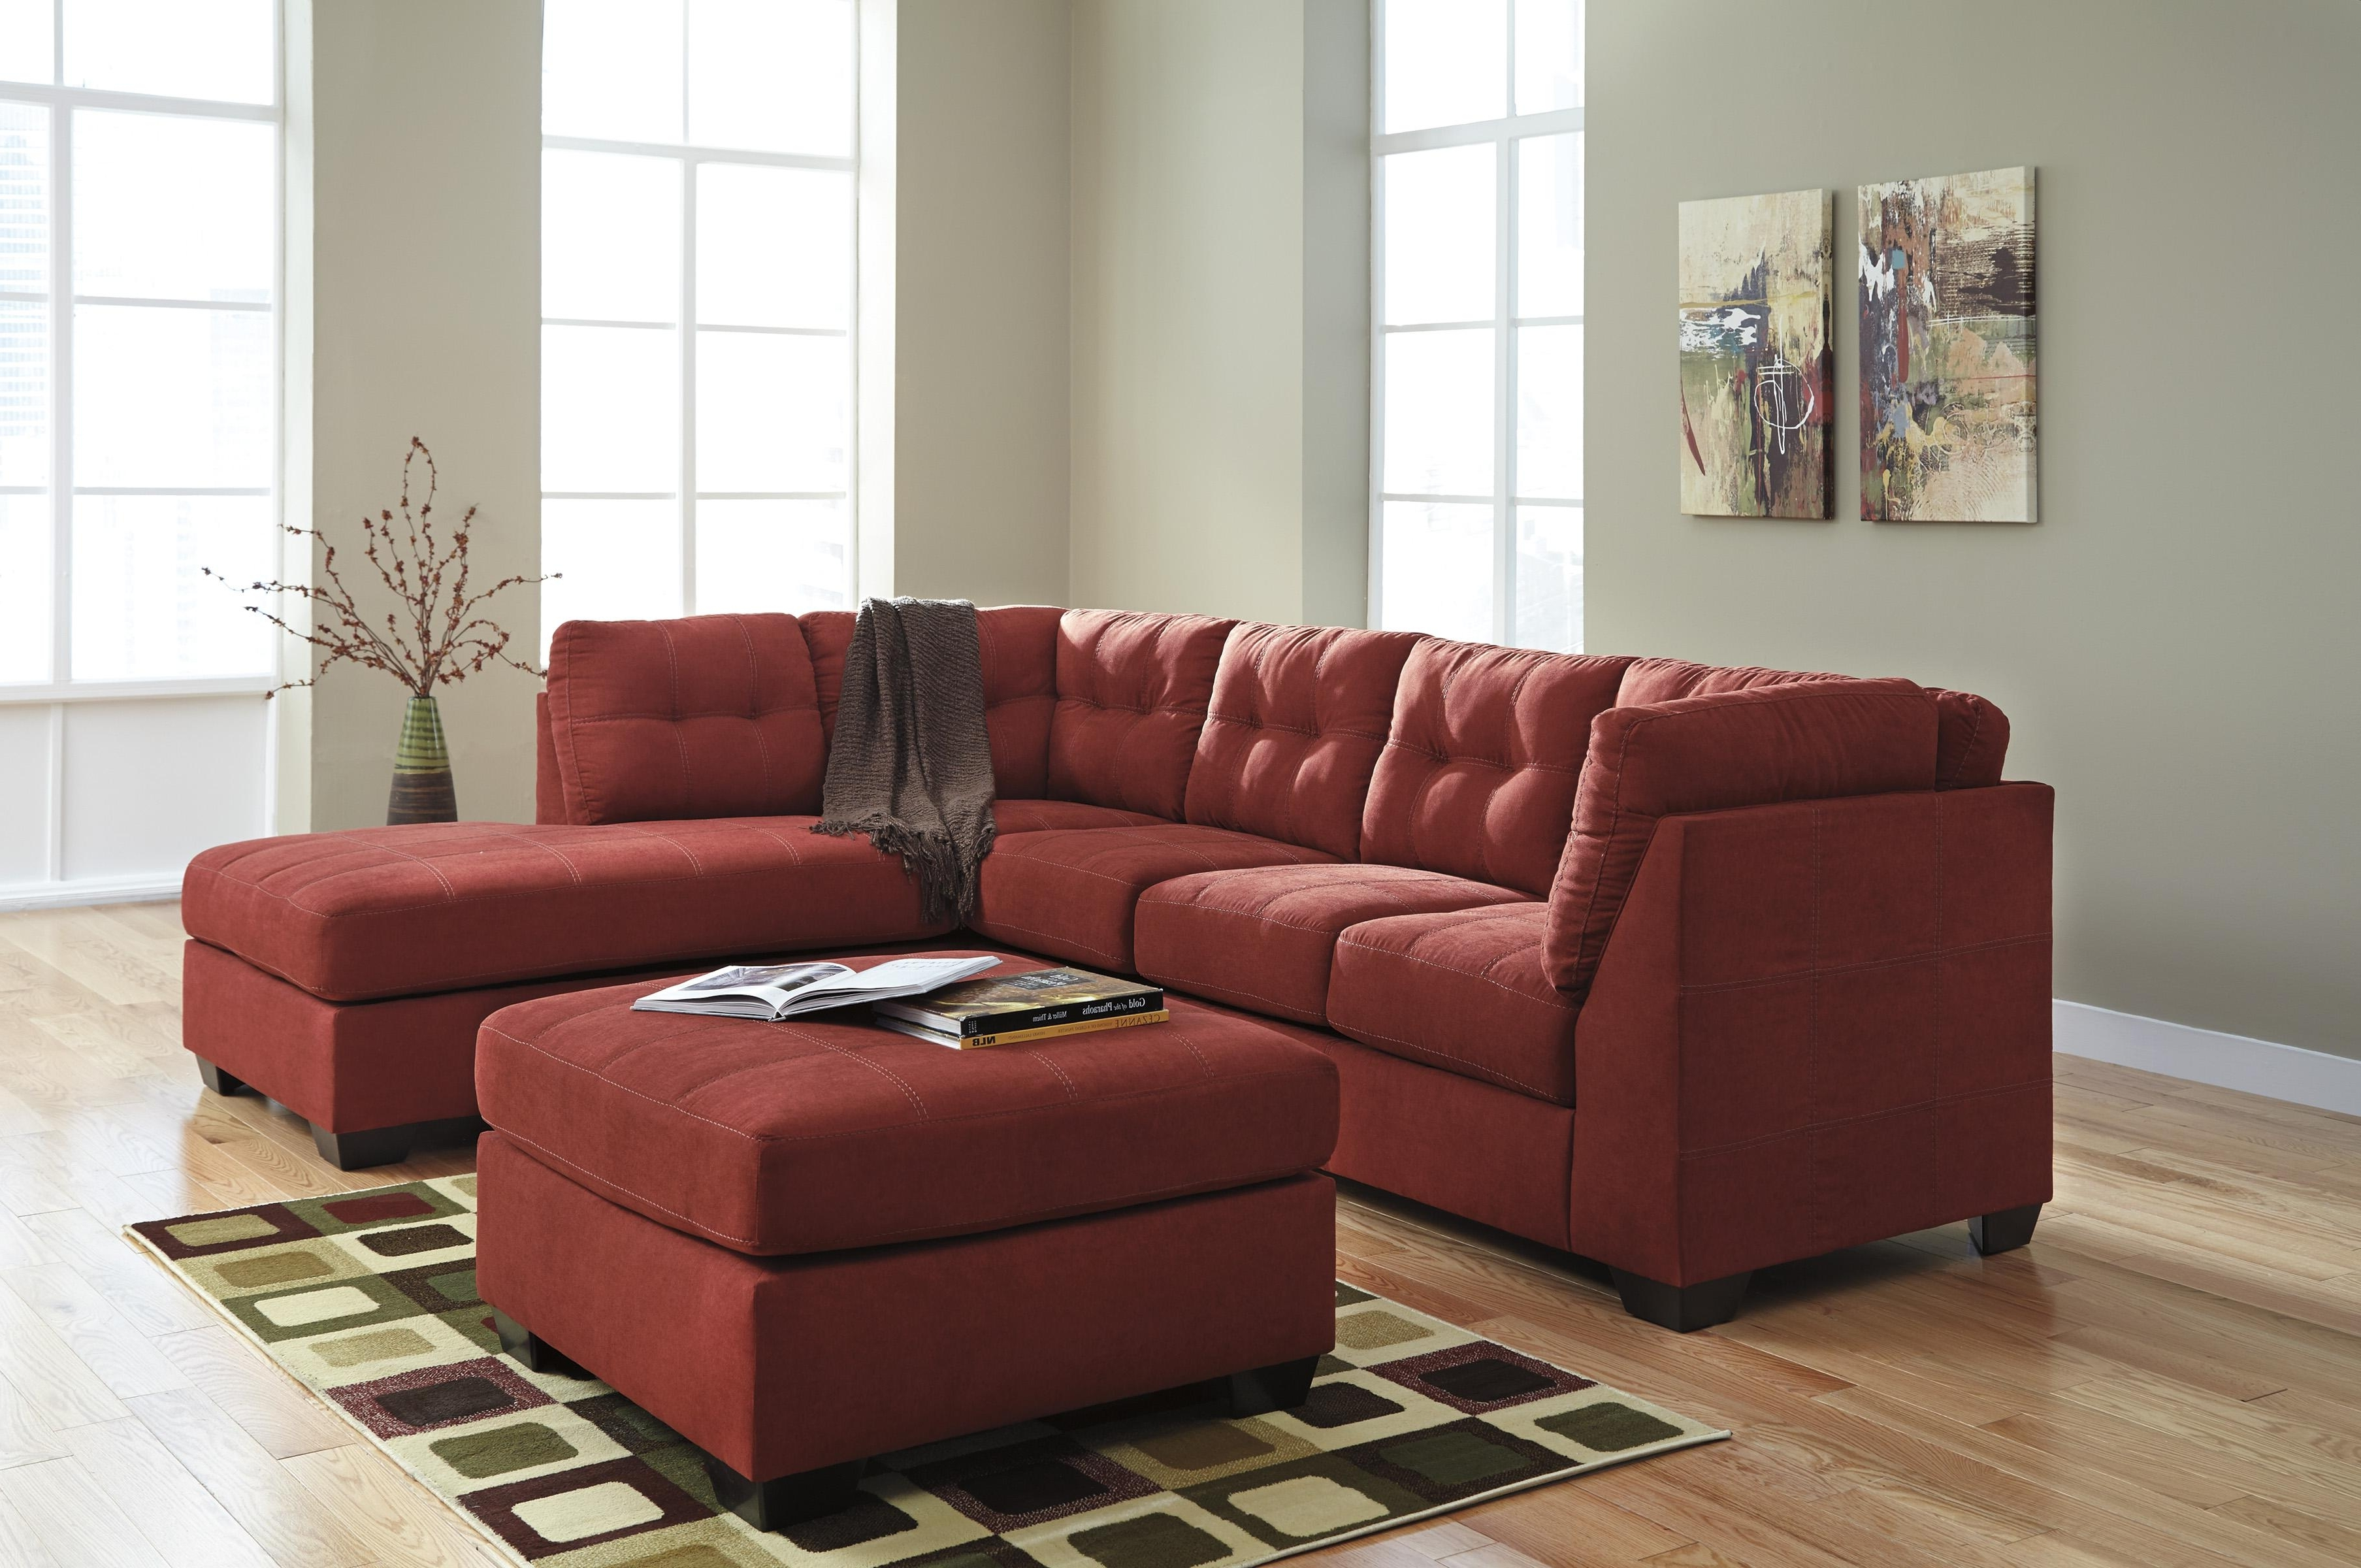 Benchcraft Maier – Sienna 2 Piece Sectional W/ Sleeper Sofa Throughout Favorite 2 Piece Sectionals With Chaise (View 6 of 15)